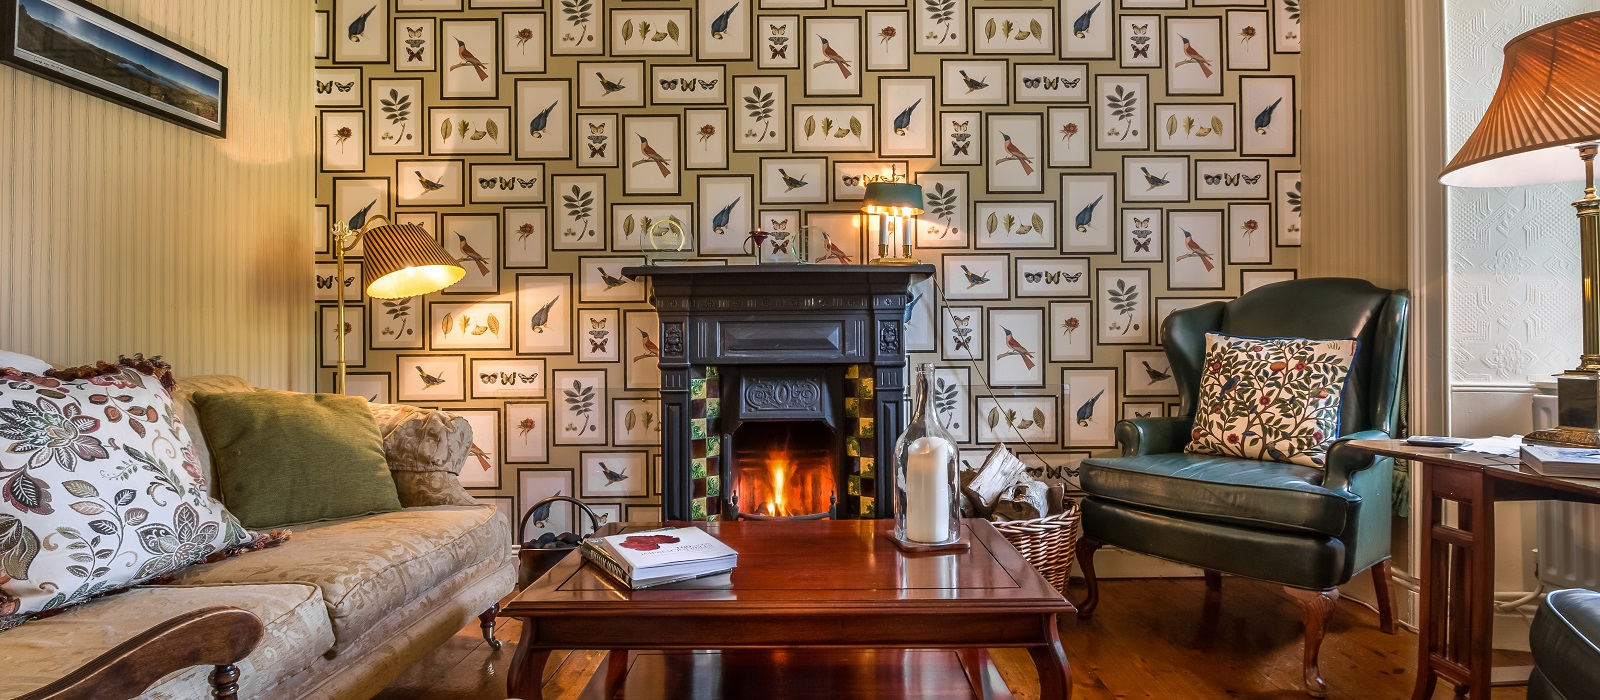 Romantic Carrig Country House Hotel on Ring of Kerry, Ireland on